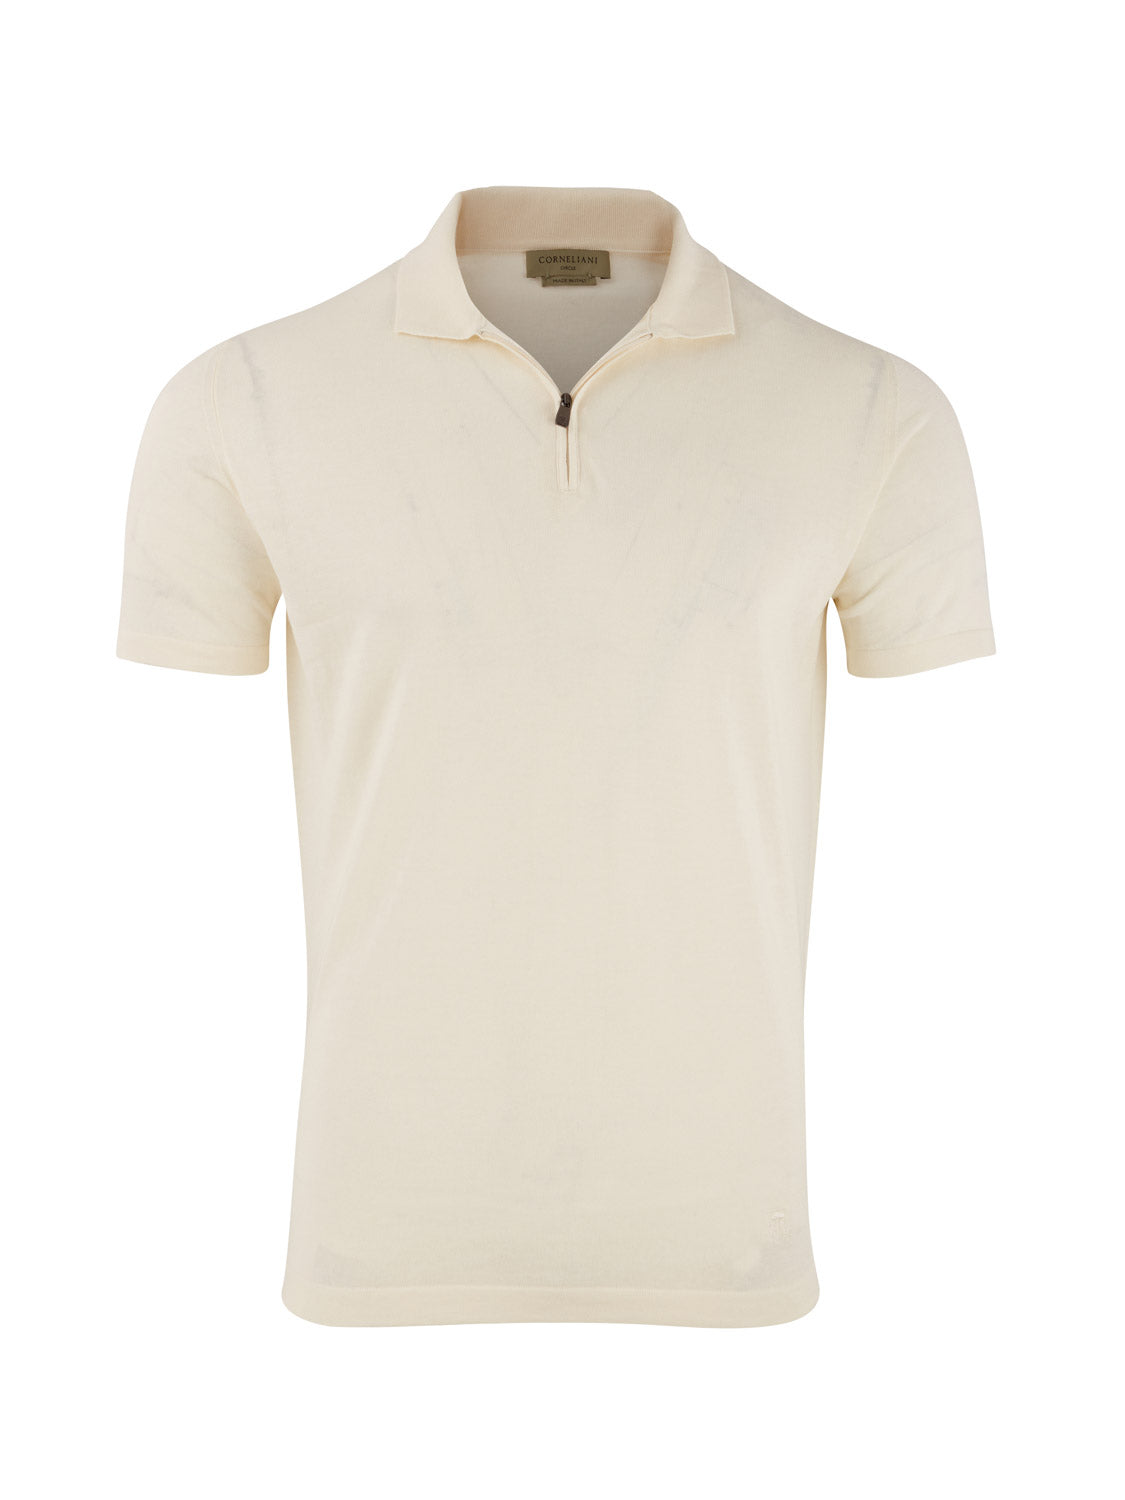 Corneliani 'Circle' Sustainable Polo (Lemon White)